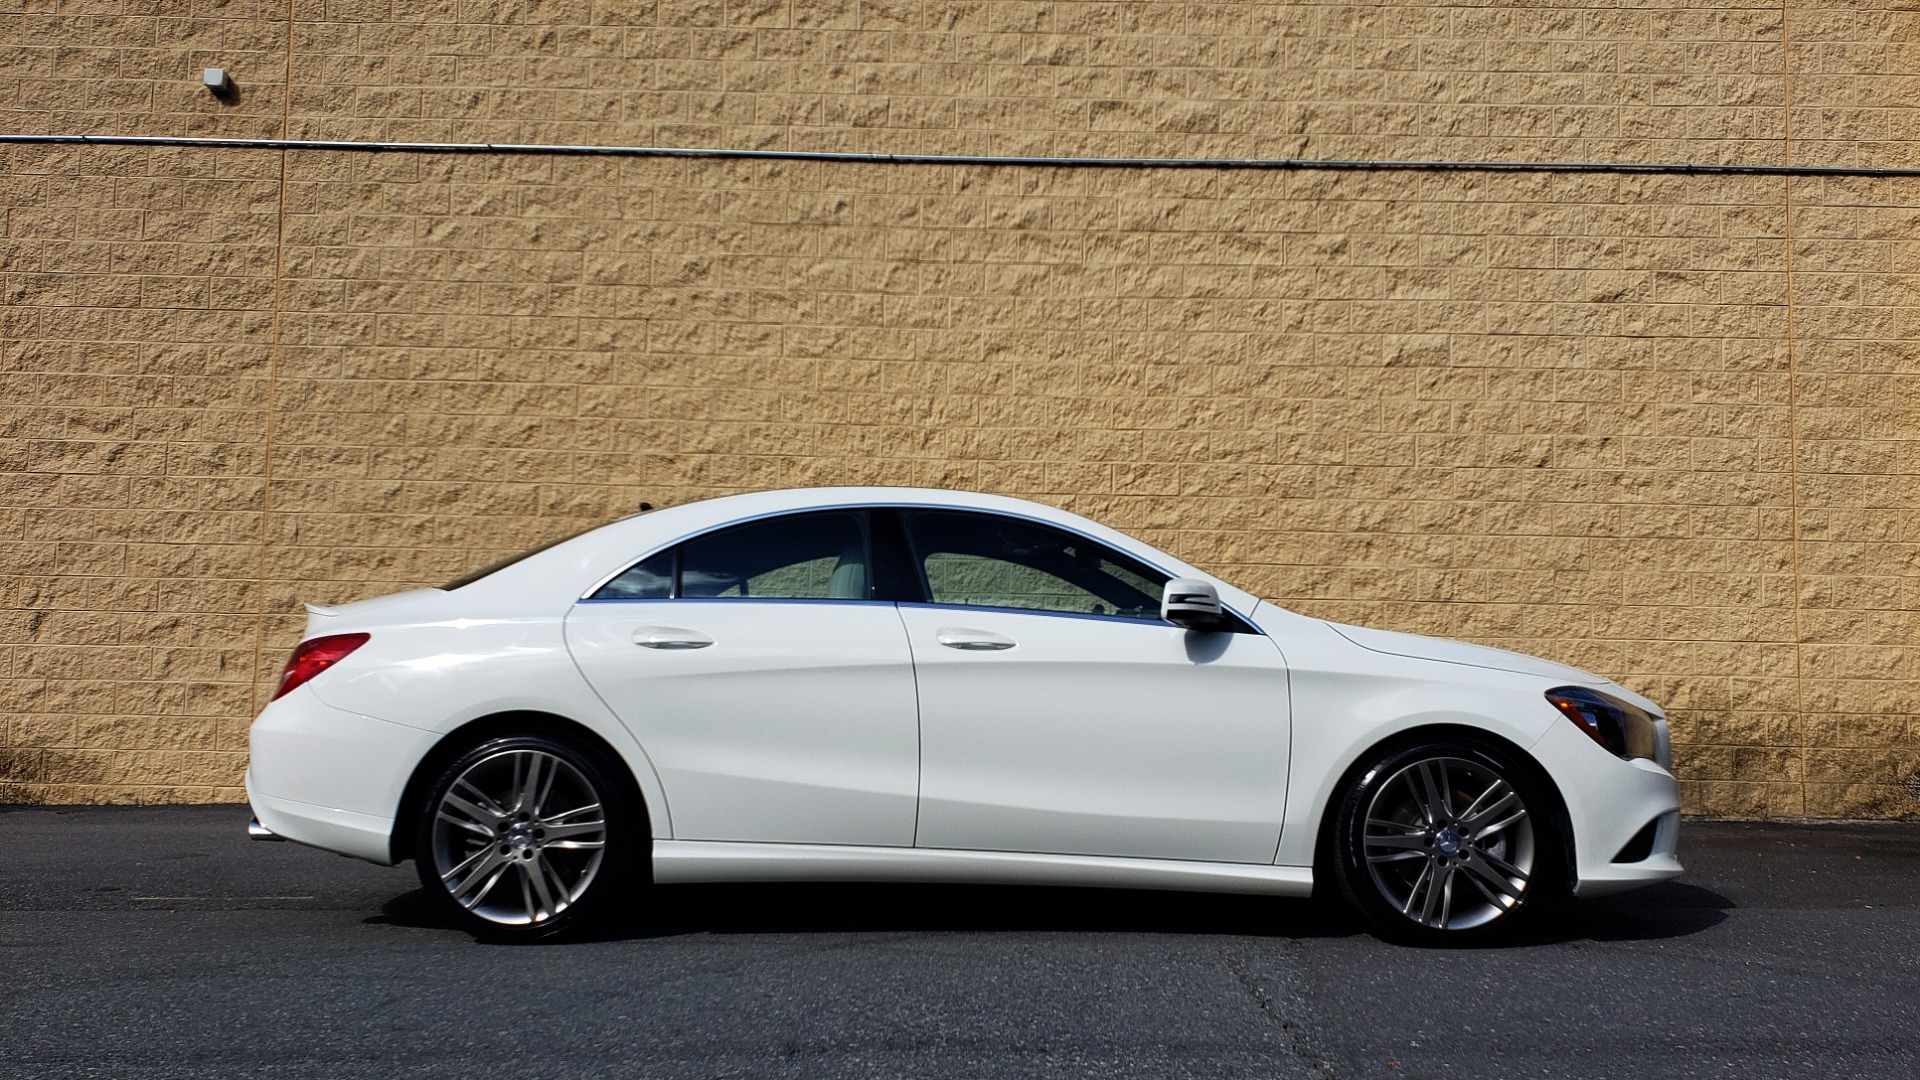 Used 2015 Mercedes-Benz CLA-Class CLA250 / FWD / SUNROOF / SPORT SUSP / CAMERA for sale Sold at Formula One Imports in Charlotte NC 28227 5